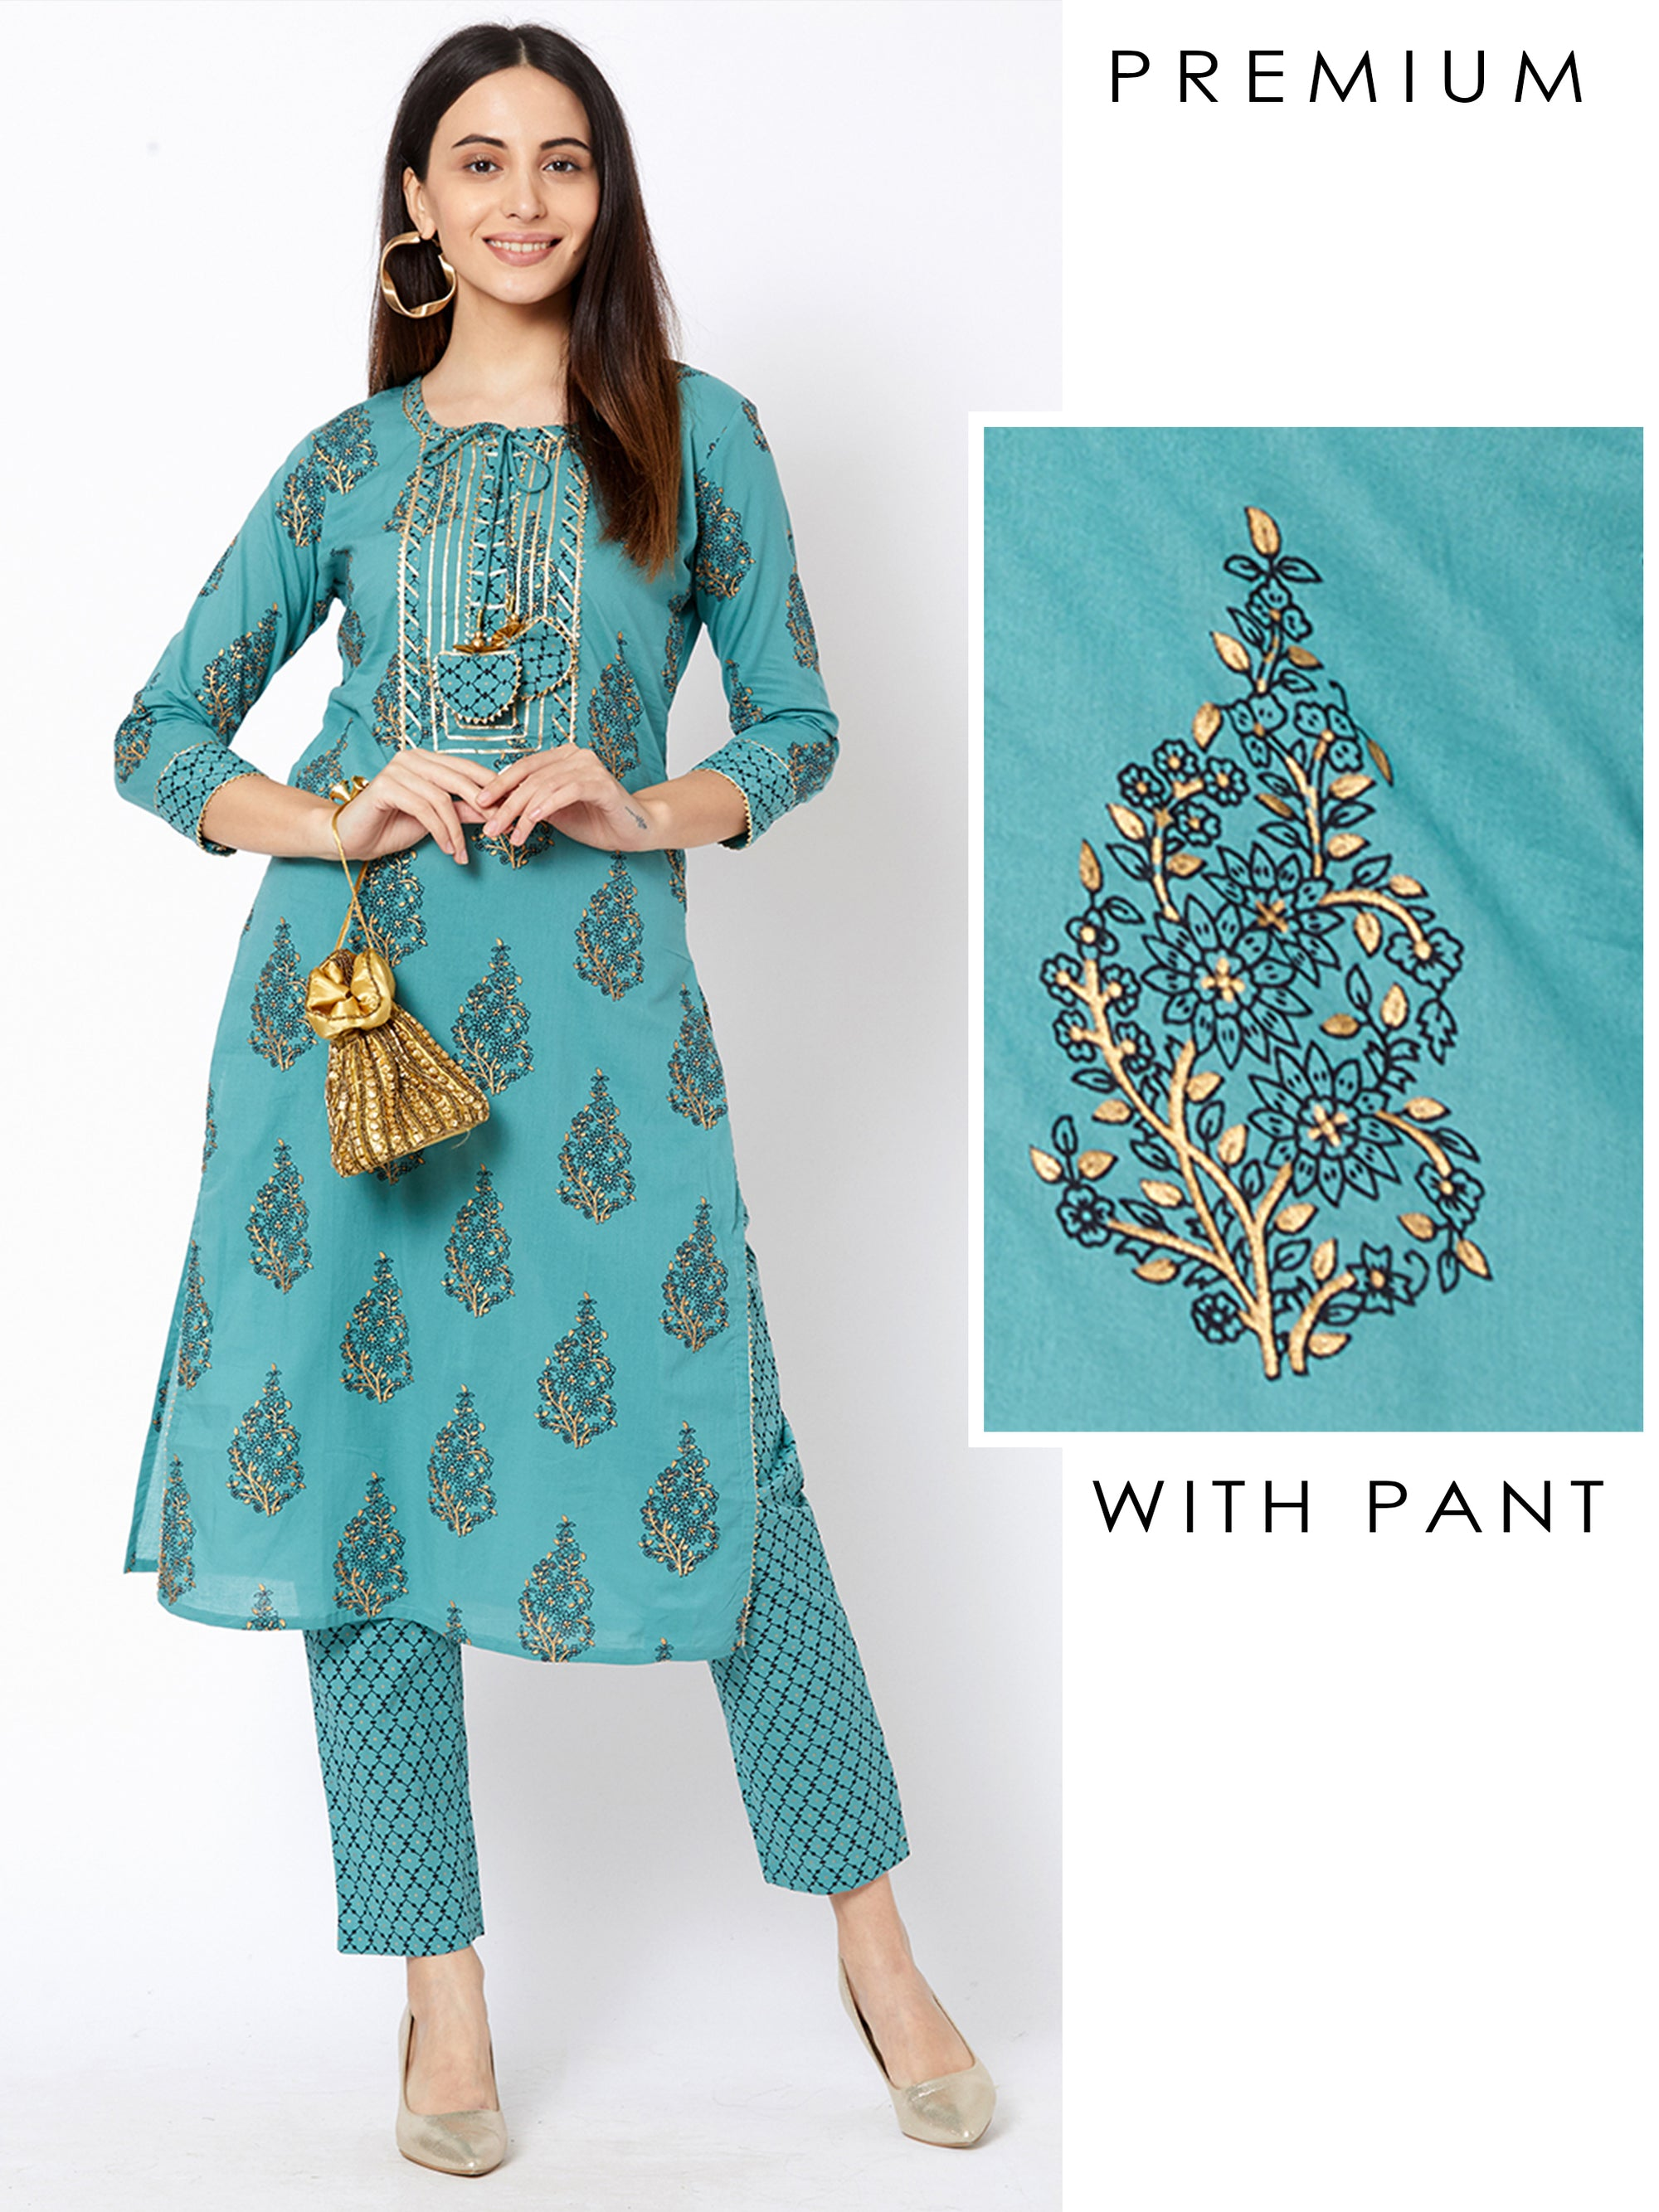 Pinnate Leaf Printed Temple Gota Kurta with Quatrefoil Printed Pant – Livid Blue